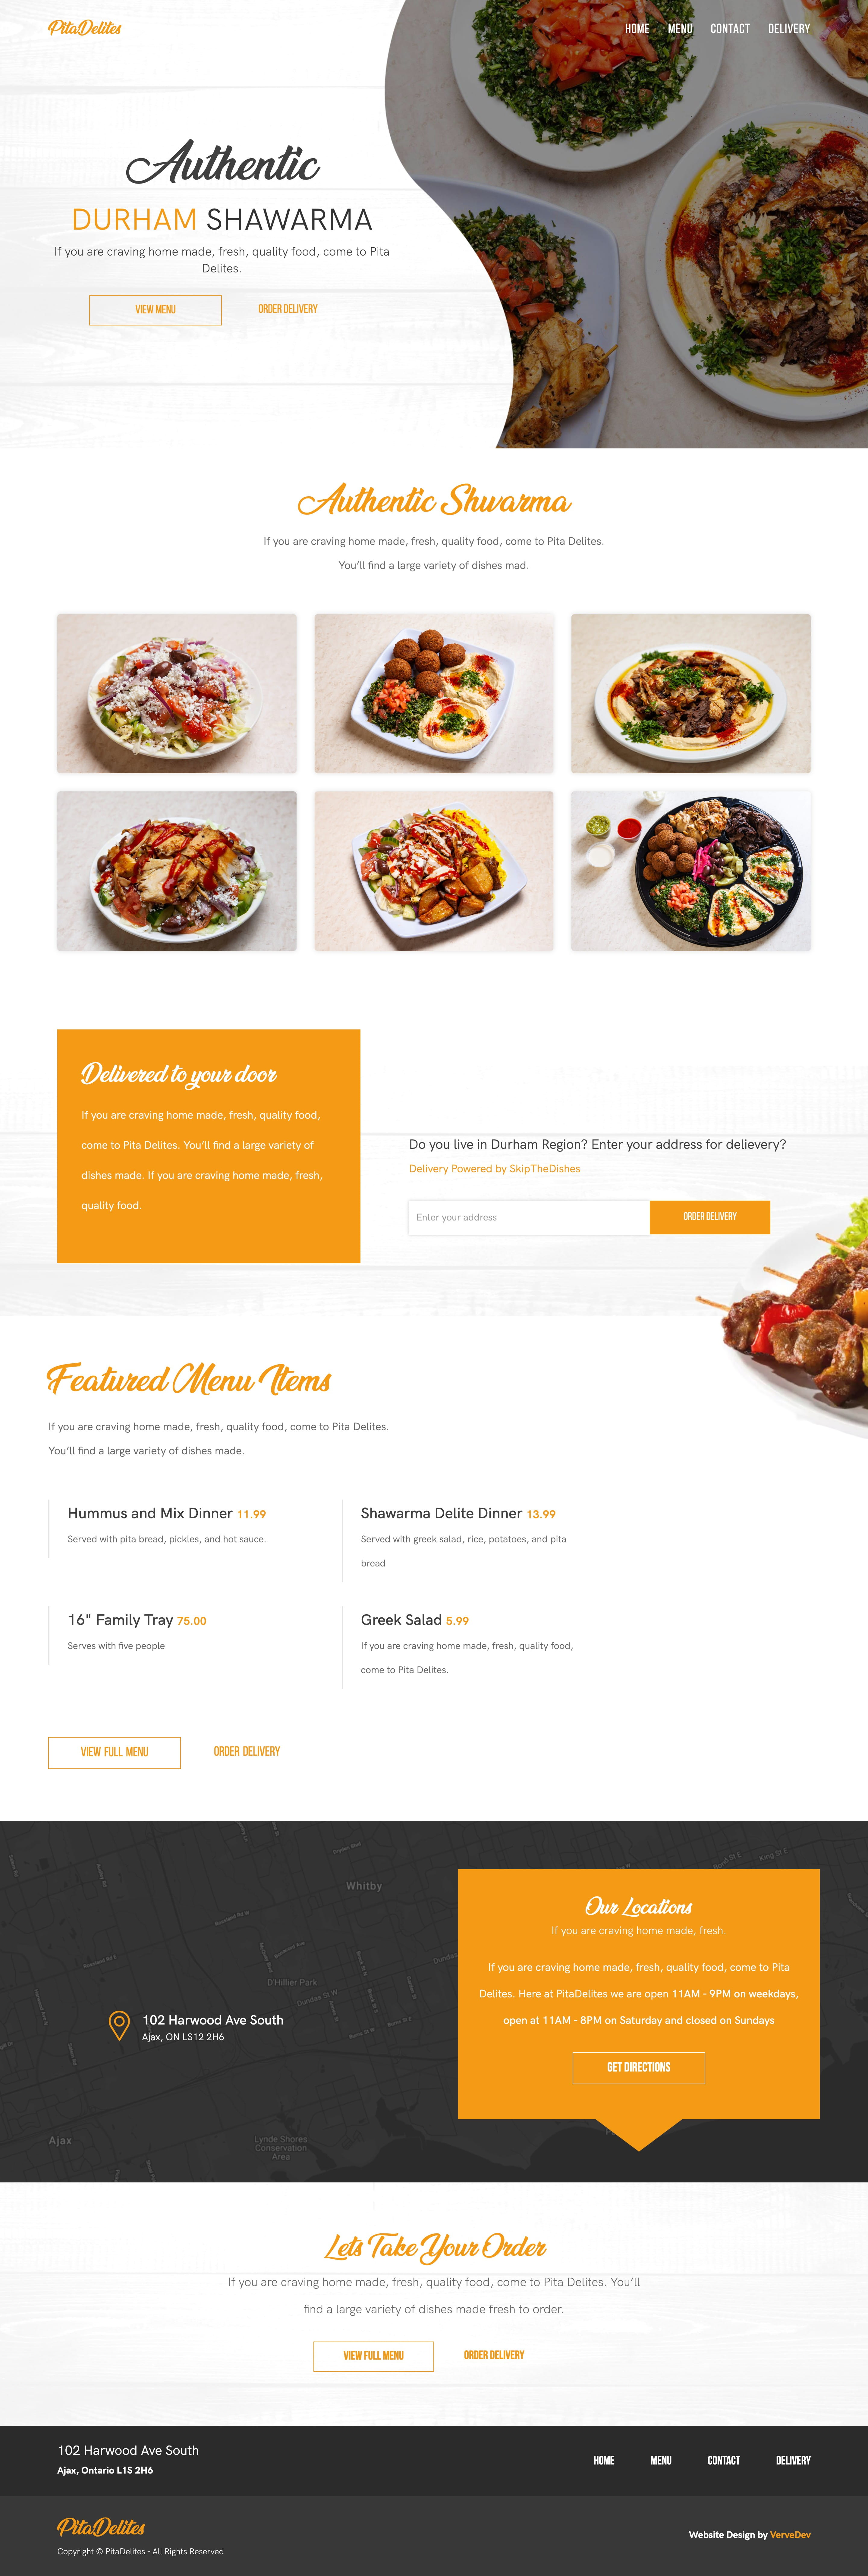 web-design-burlington-portfolio-1